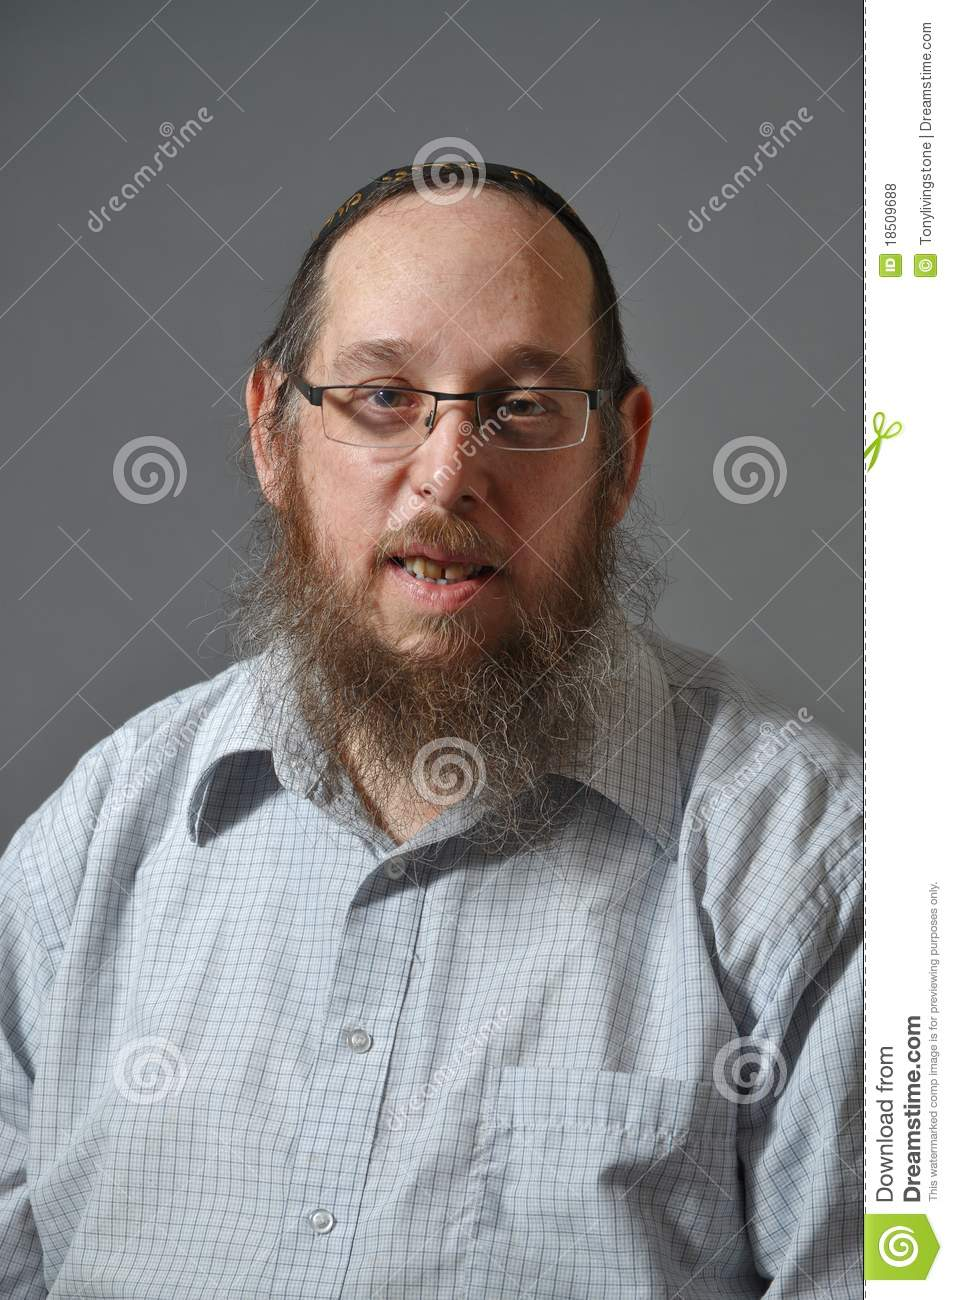 jewish single men in man Welcome to the simple online dating site, here you can chat, date, or just flirt with men or women sign up for free and send messages to single women or man.